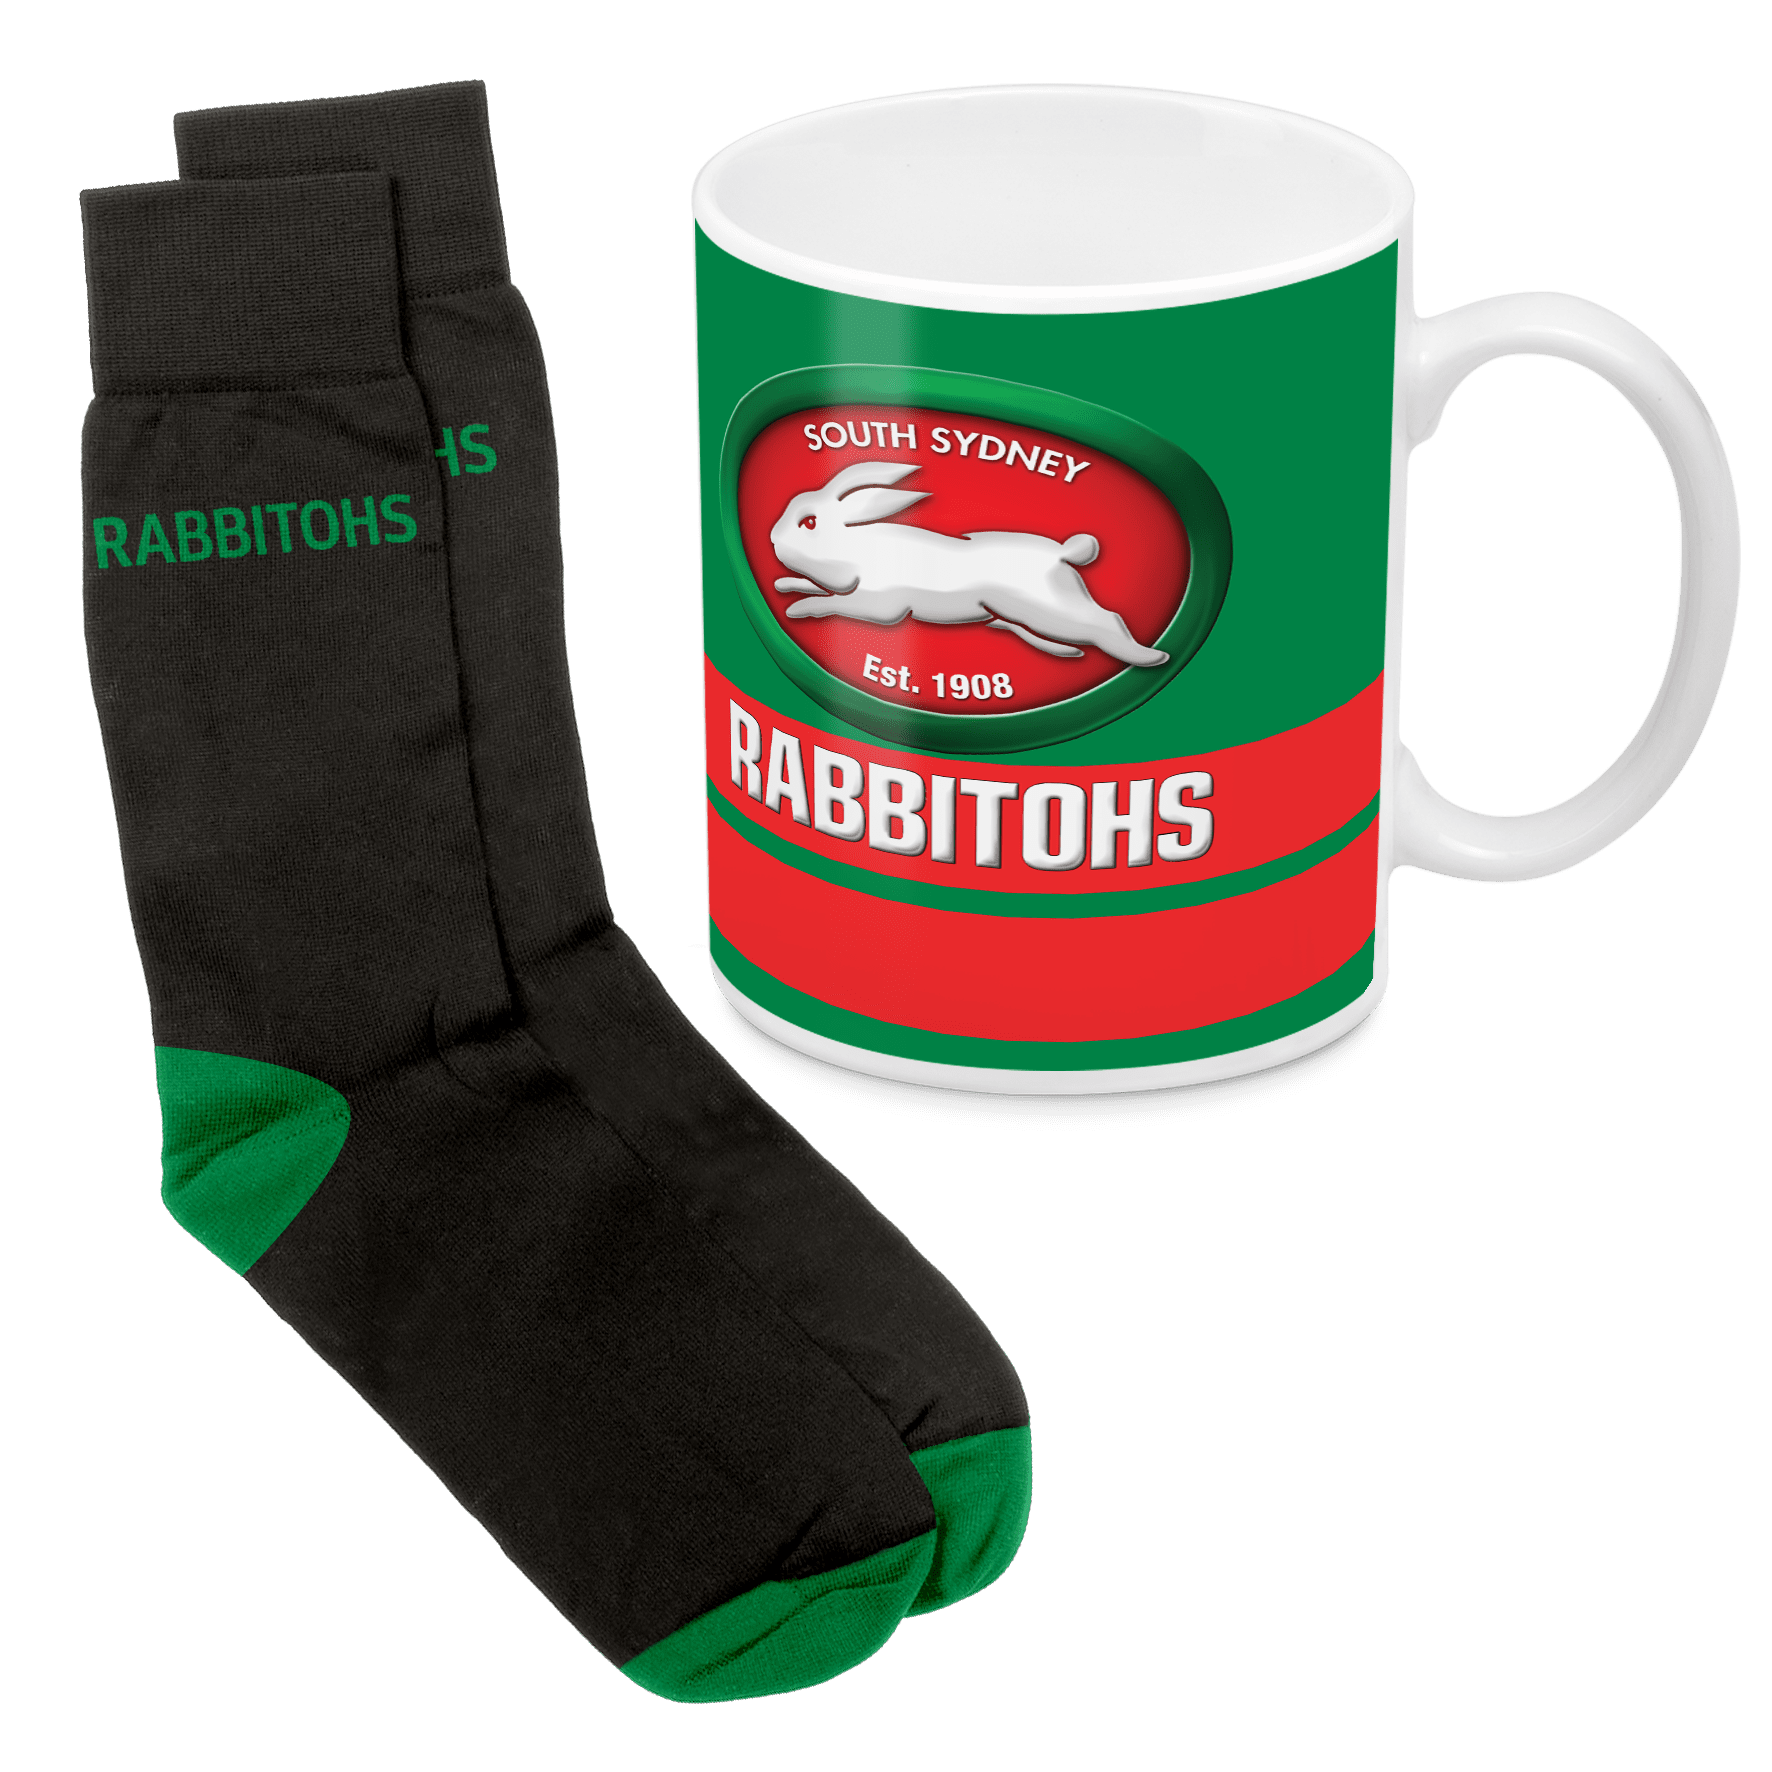 NRL Mug & Sock Gift Pack Rabbitohs